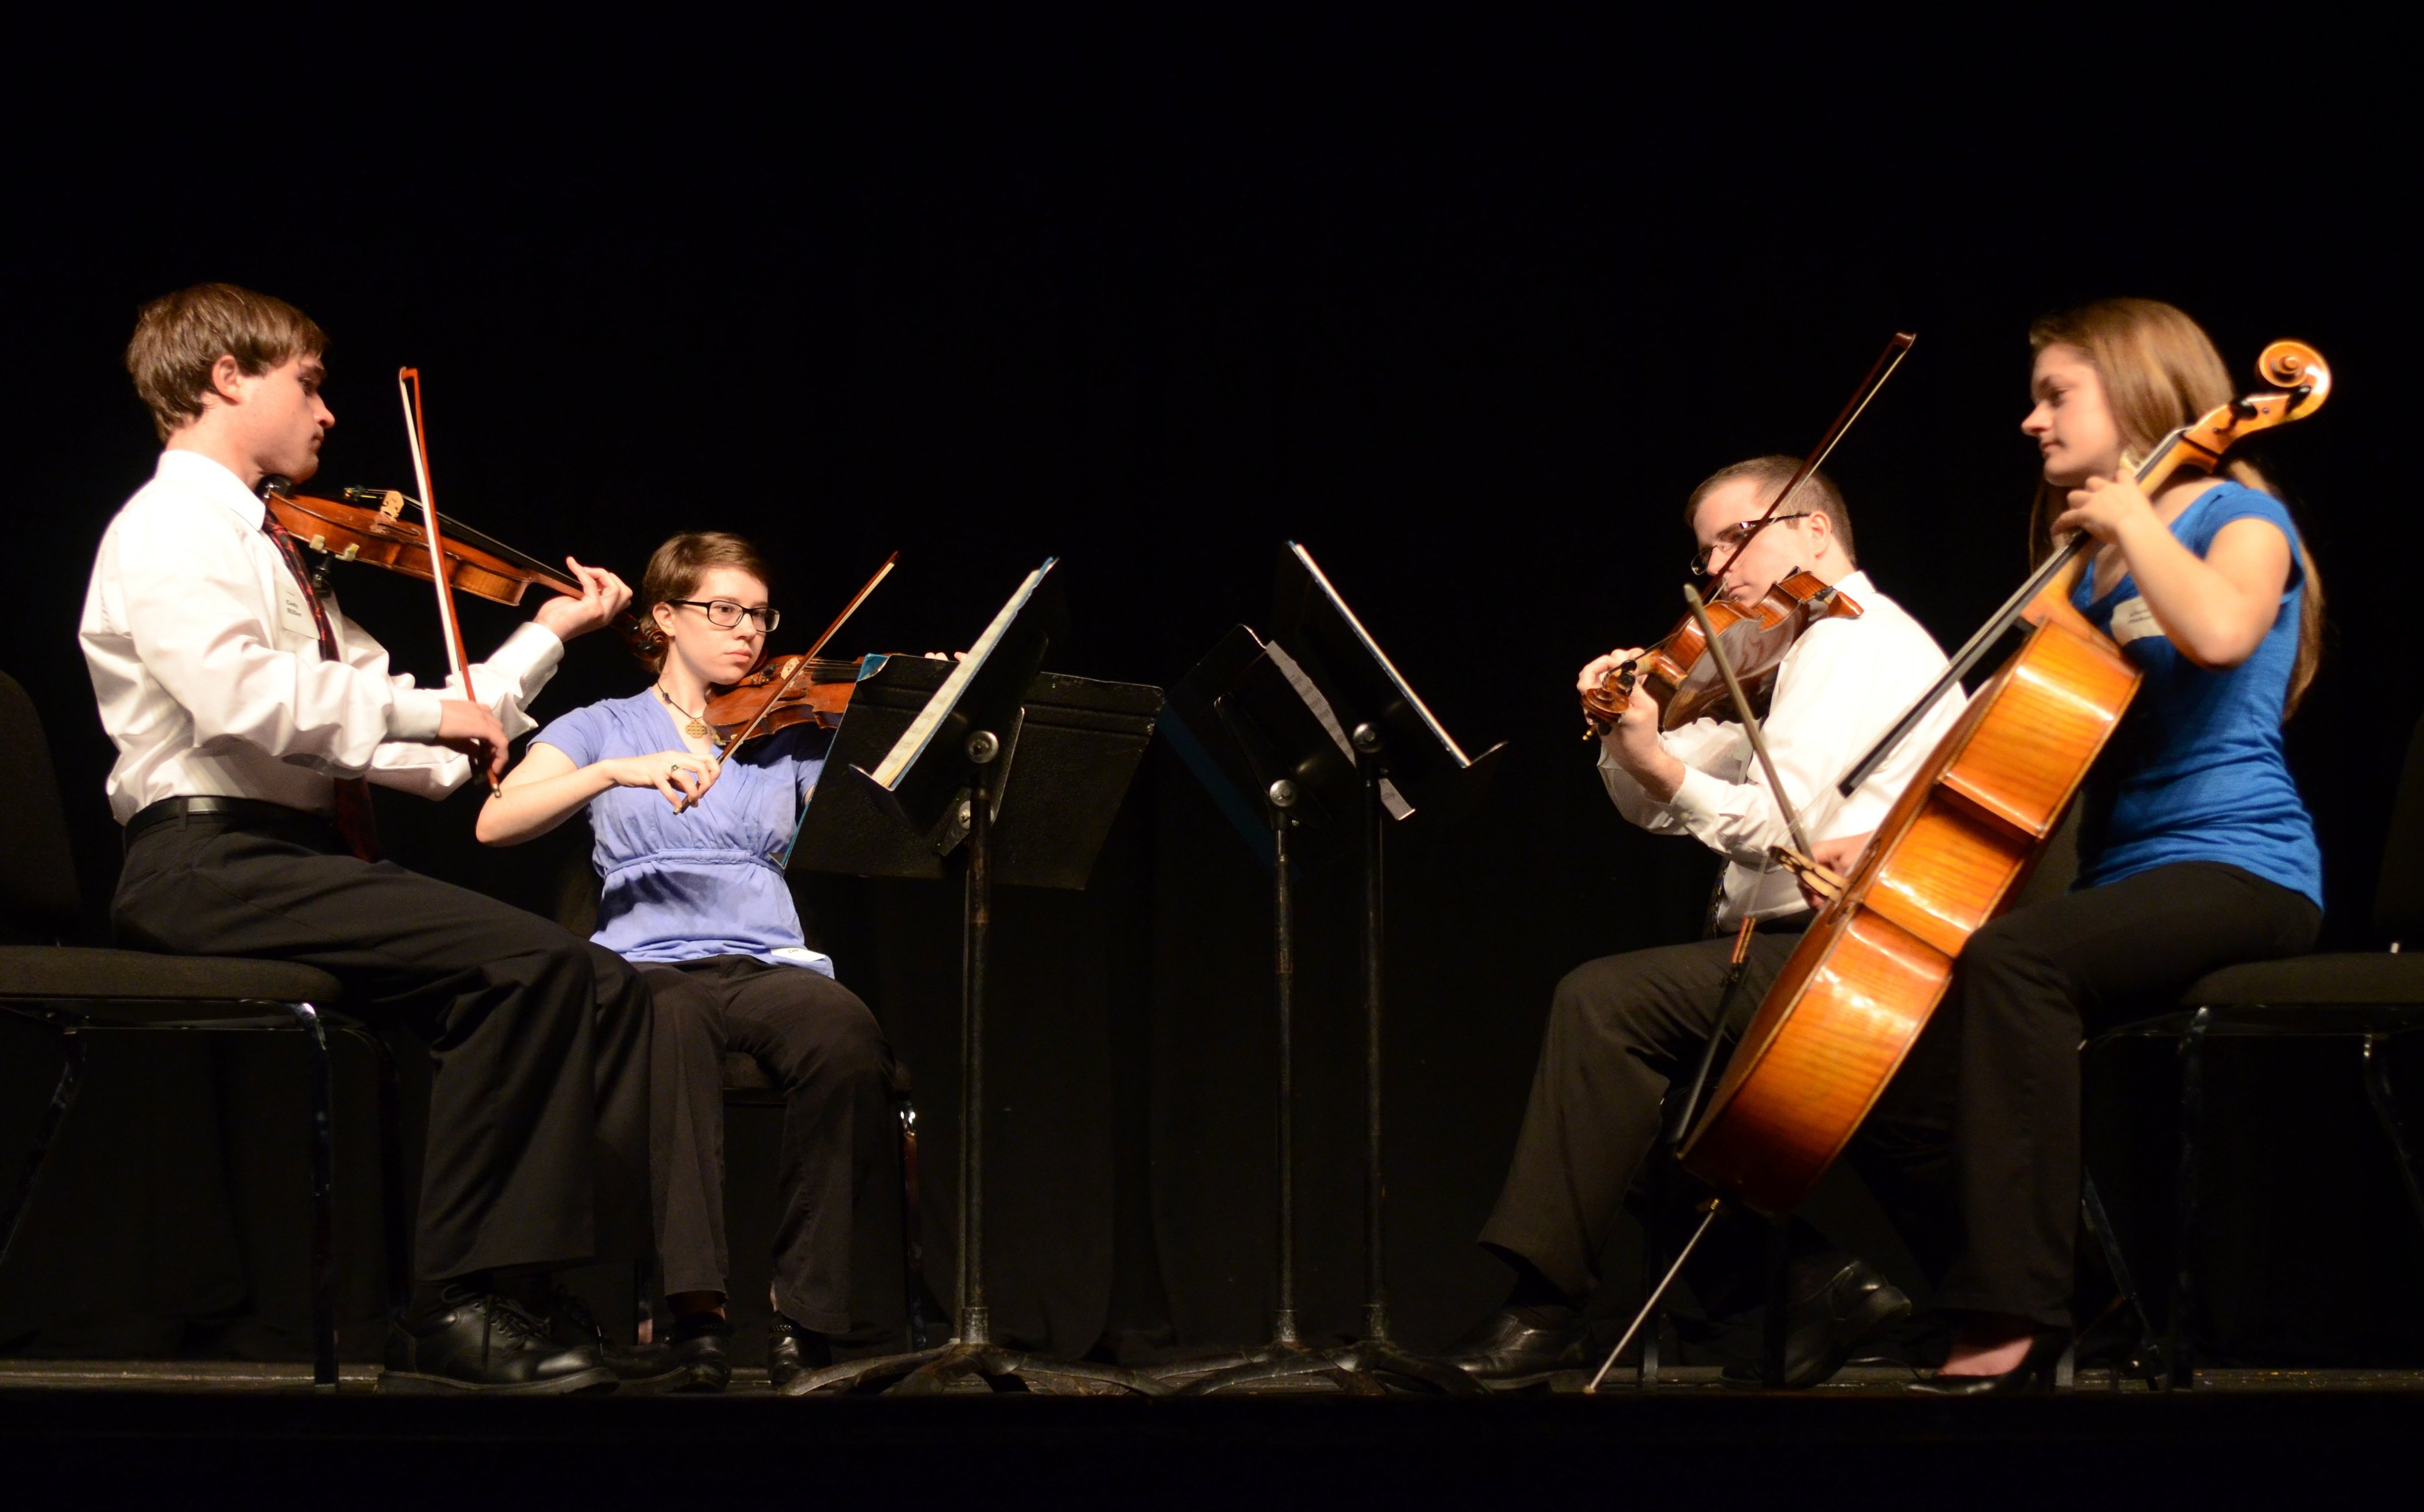 string quartet performs